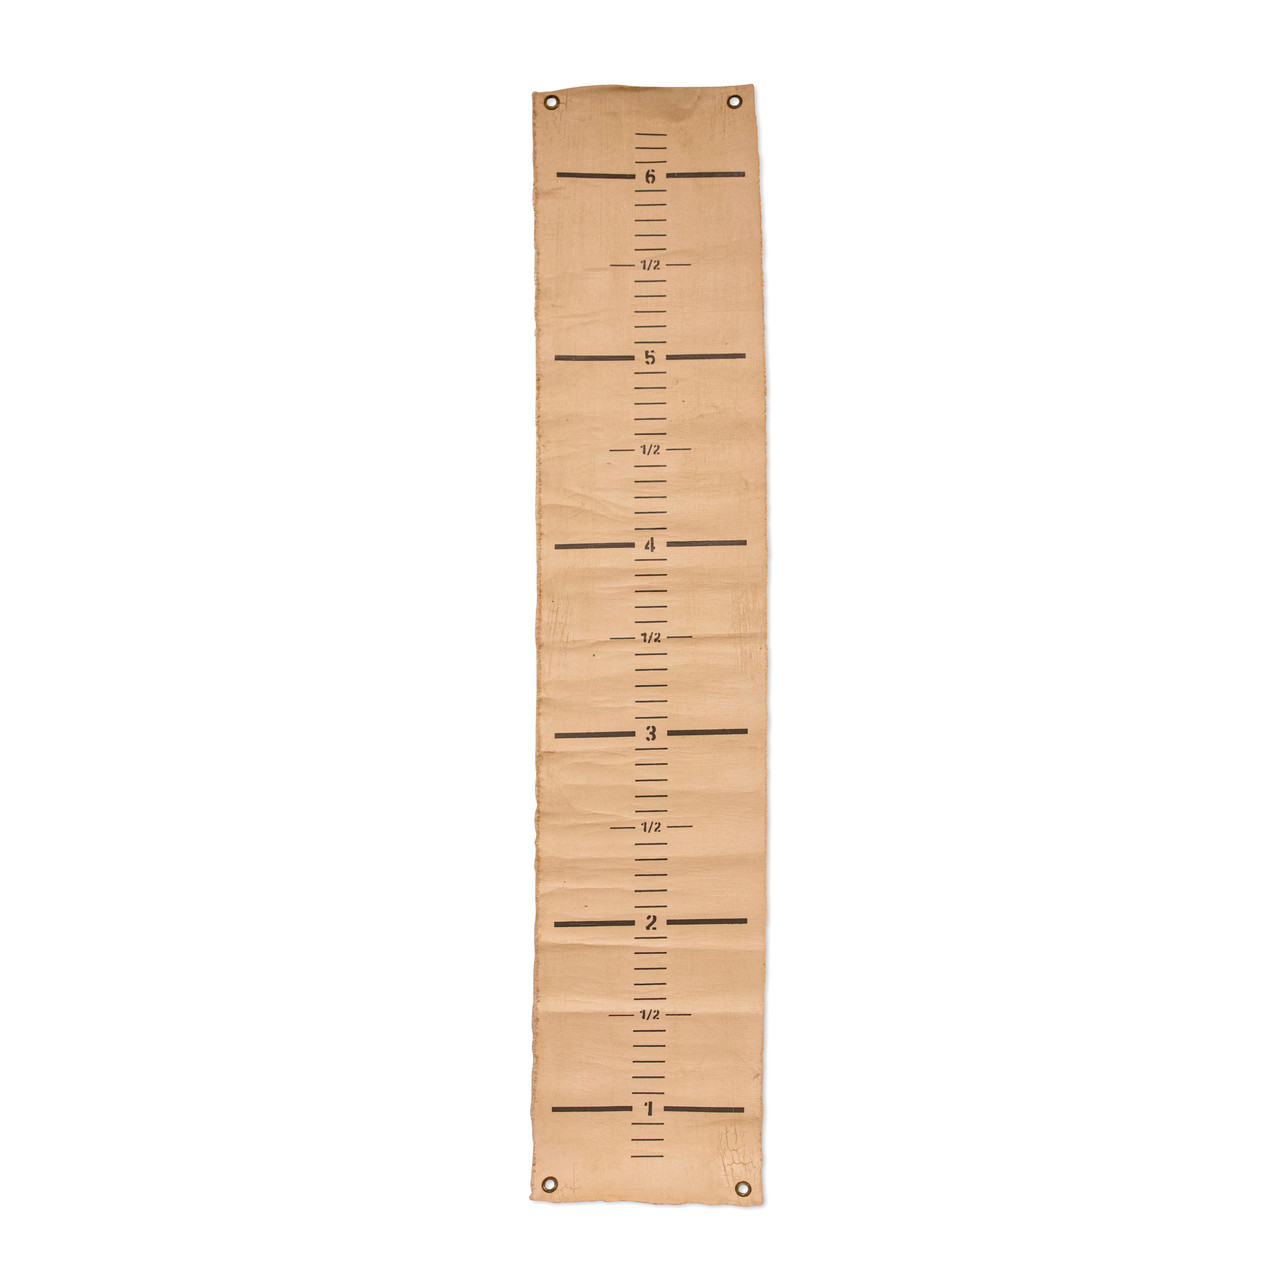 Painted canvas growth chart